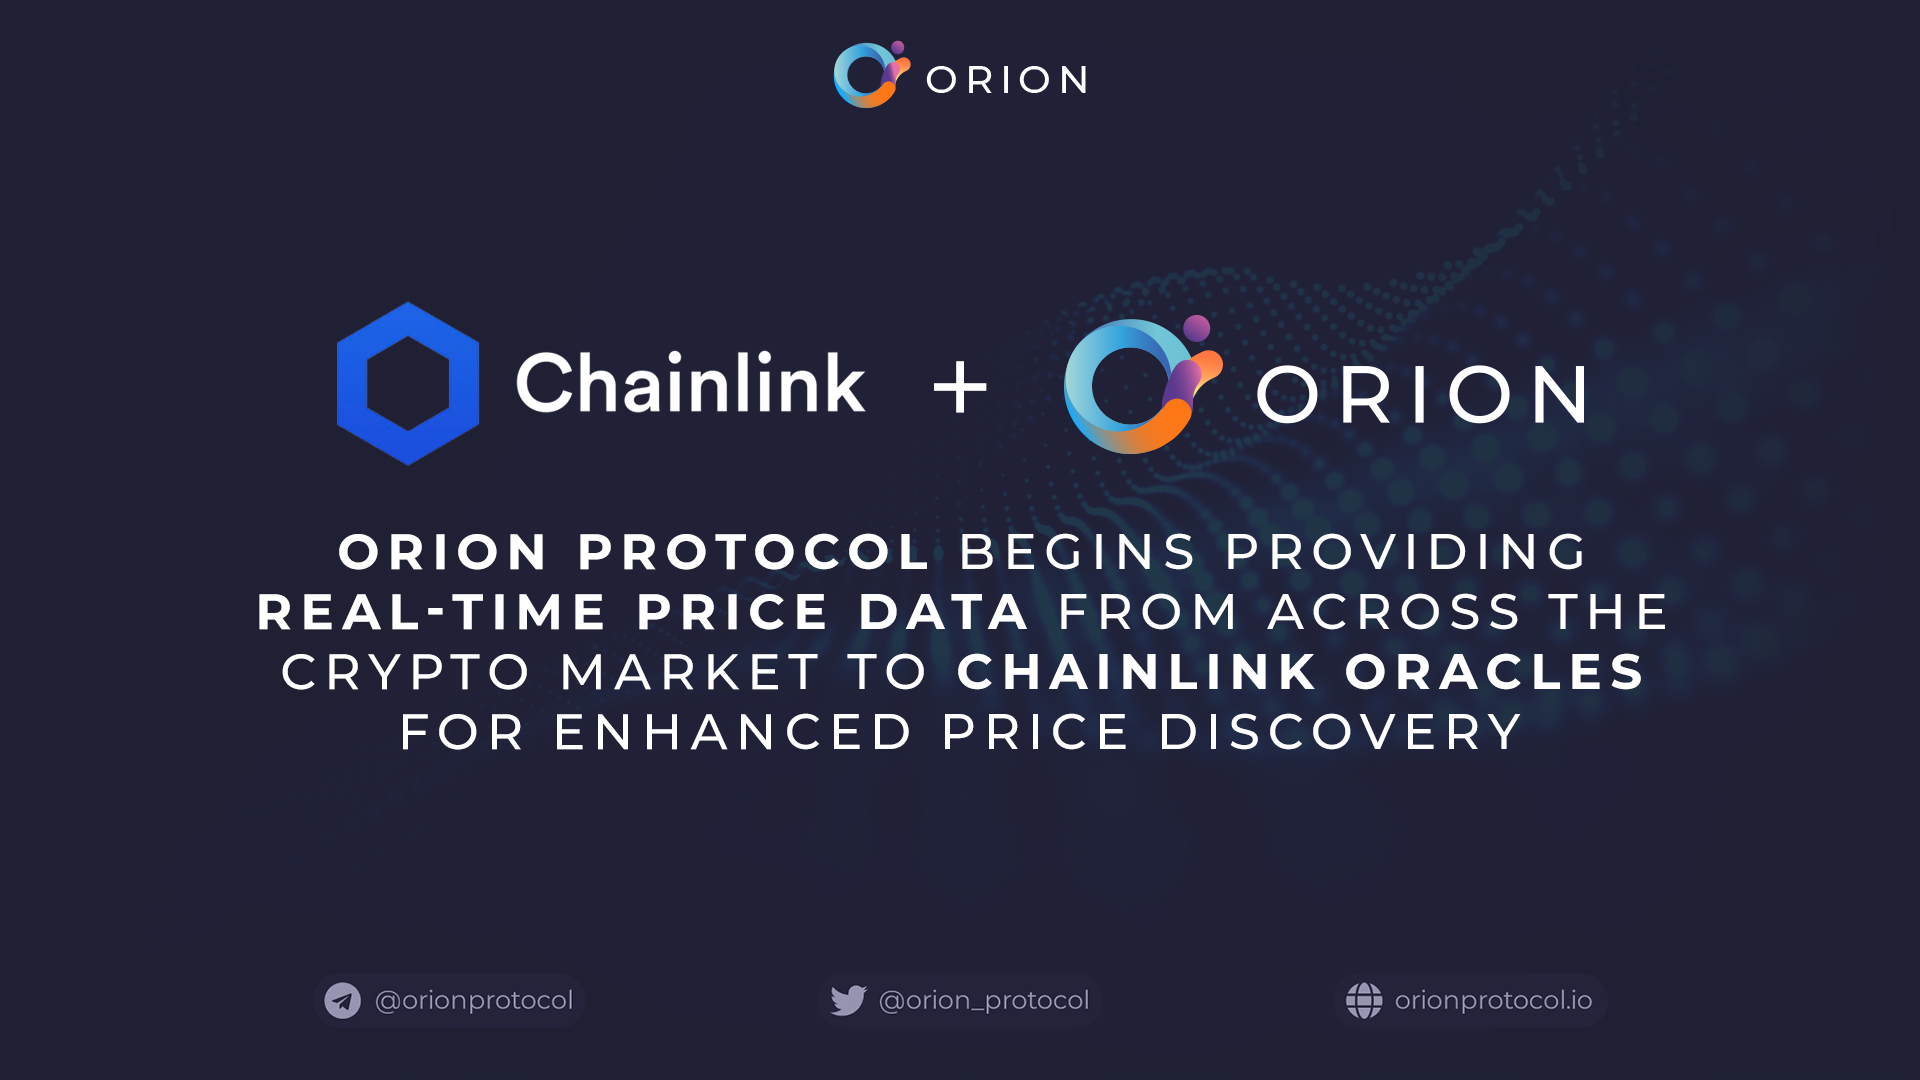 Orion Protocol Providing Real-Time Price Data to Chainlink